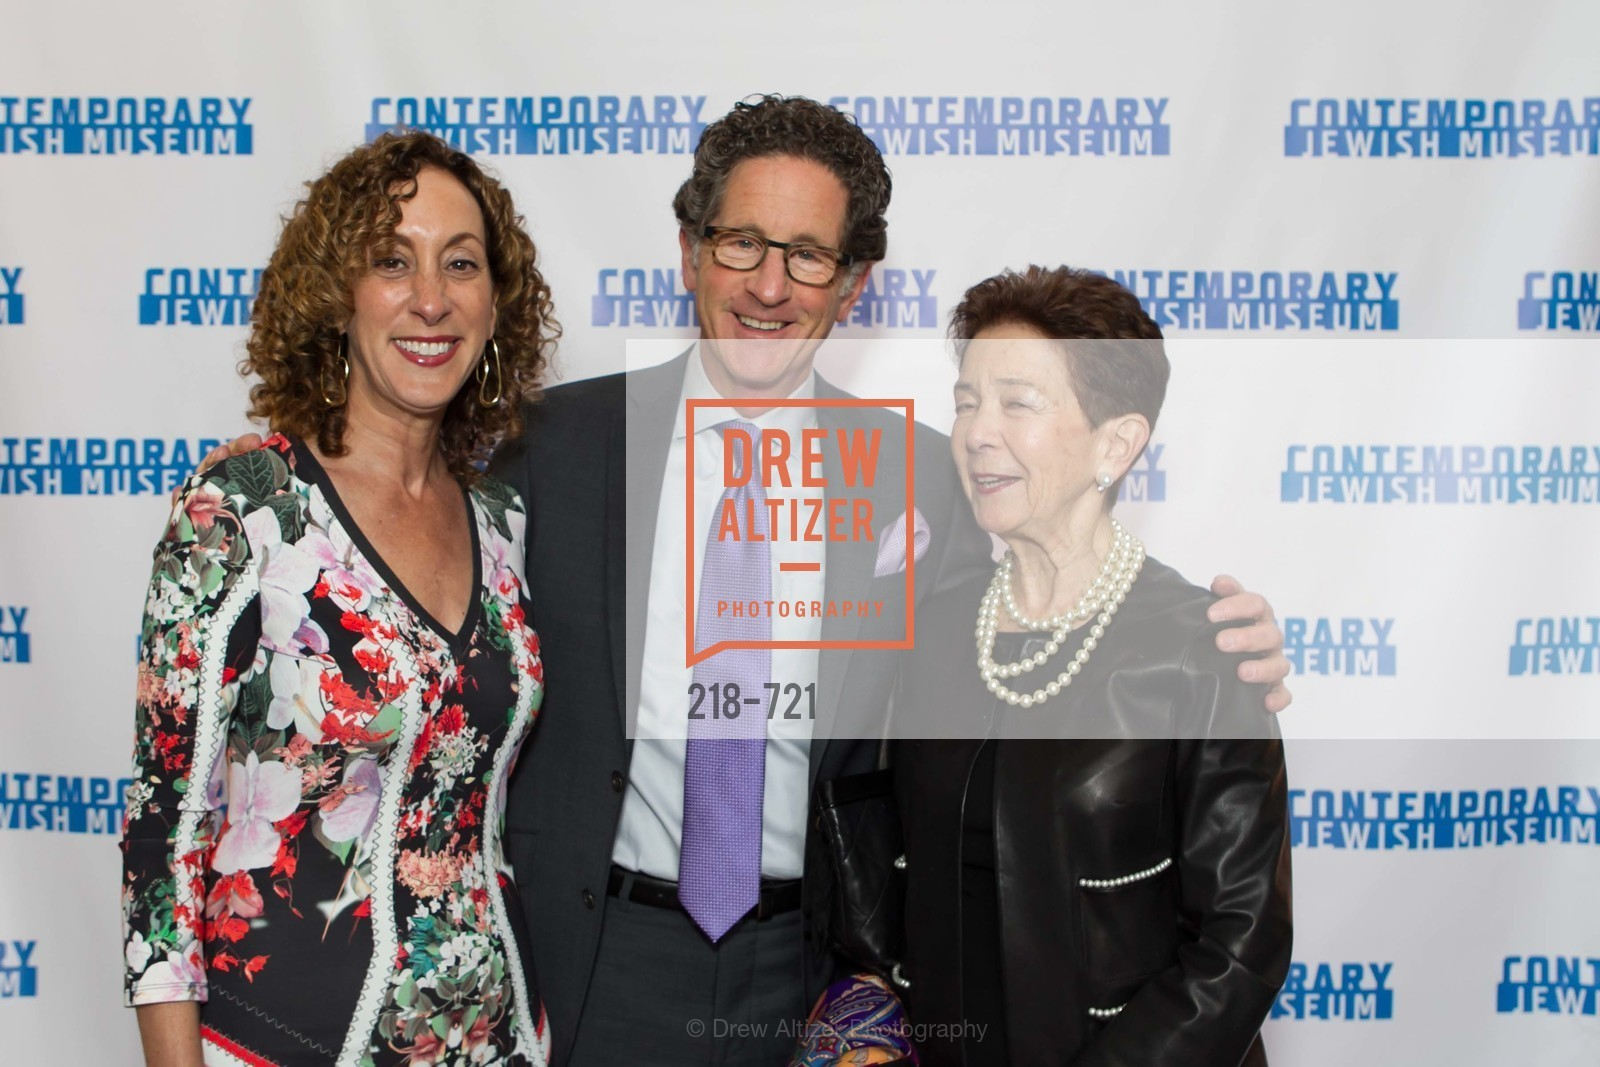 Susan Snyder, Steven Sockolov, Roselyne Swig, The 2015 Dorothy Saxe Invitational Celebration at the JEWISH MUSEUM, US, May 12th, 2015,Drew Altizer, Drew Altizer Photography, full-service agency, private events, San Francisco photographer, photographer california